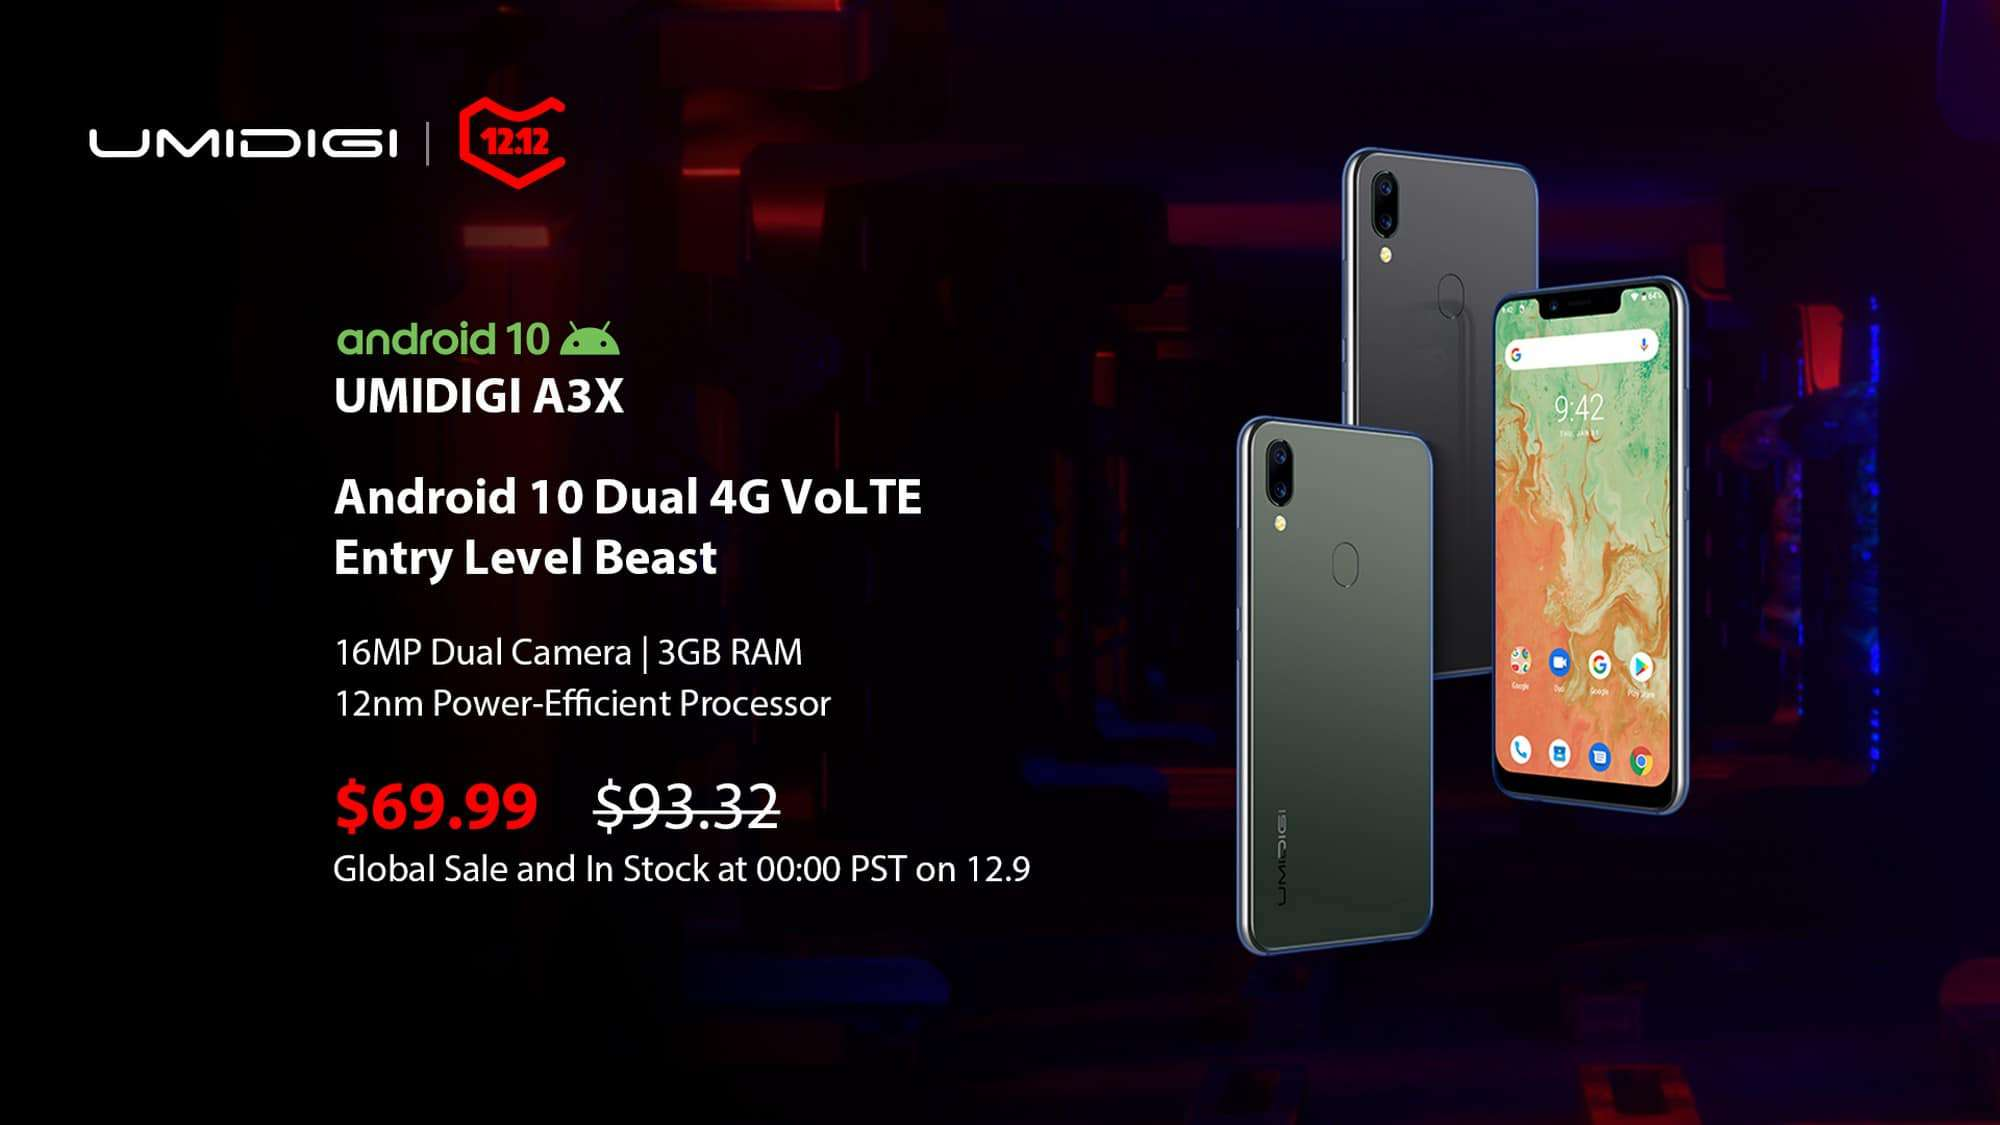 Umidigi announces new A3S smartphon for $ 59.99: Cheap smartphone with Androi d10